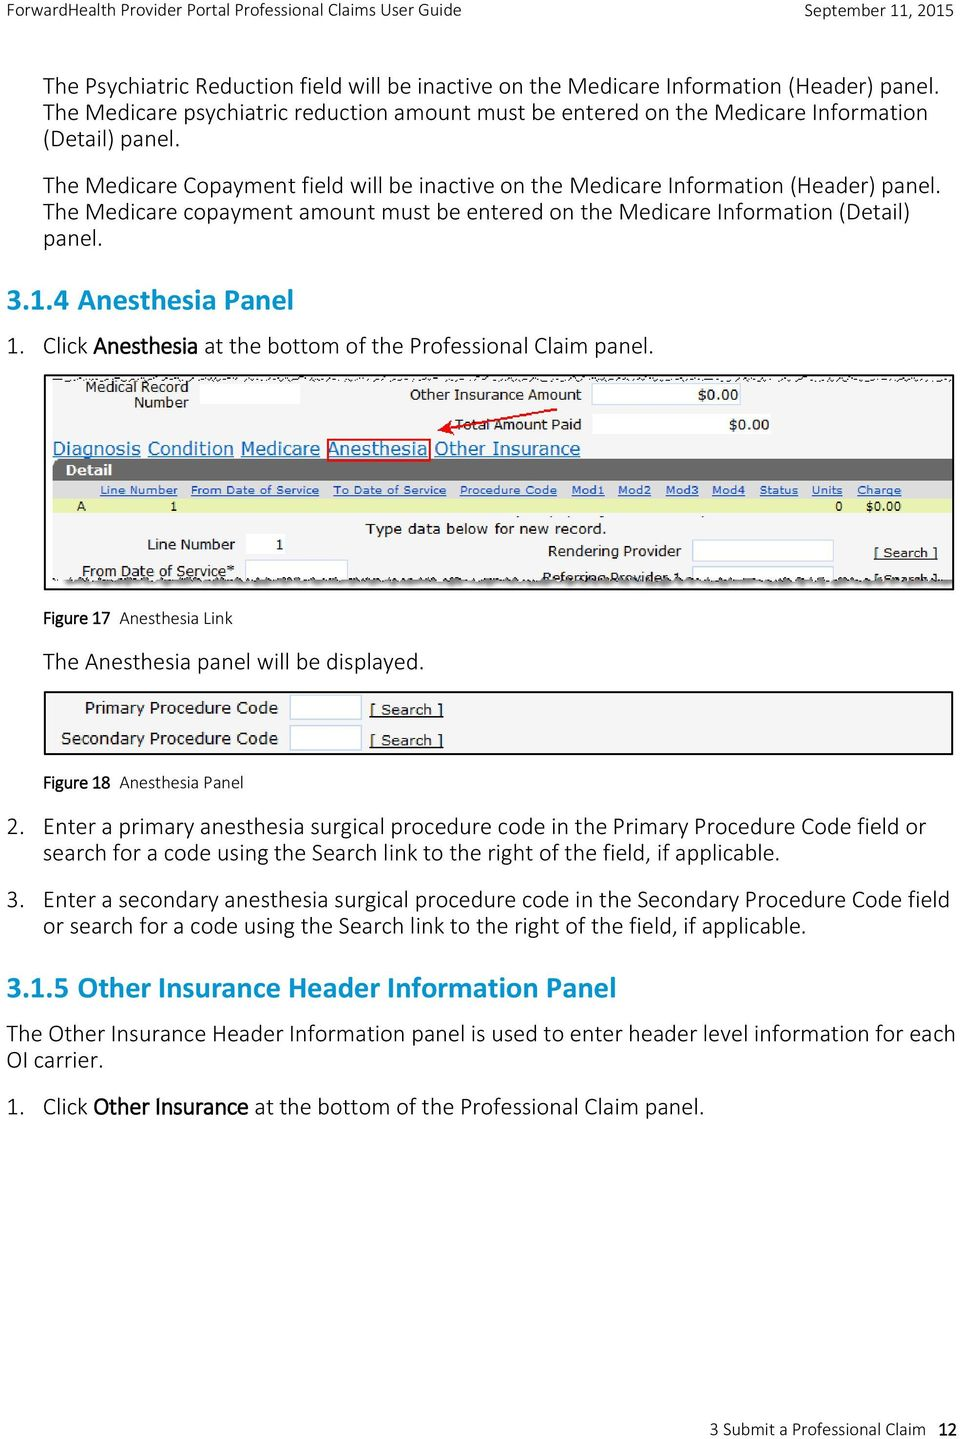 4 Anesthesia Panel 1. Click Anesthesia at the bottom of the Professional Claim panel. Figure 17 Anesthesia Link The Anesthesia panel will be displayed. Figure 18 Anesthesia Panel 2.